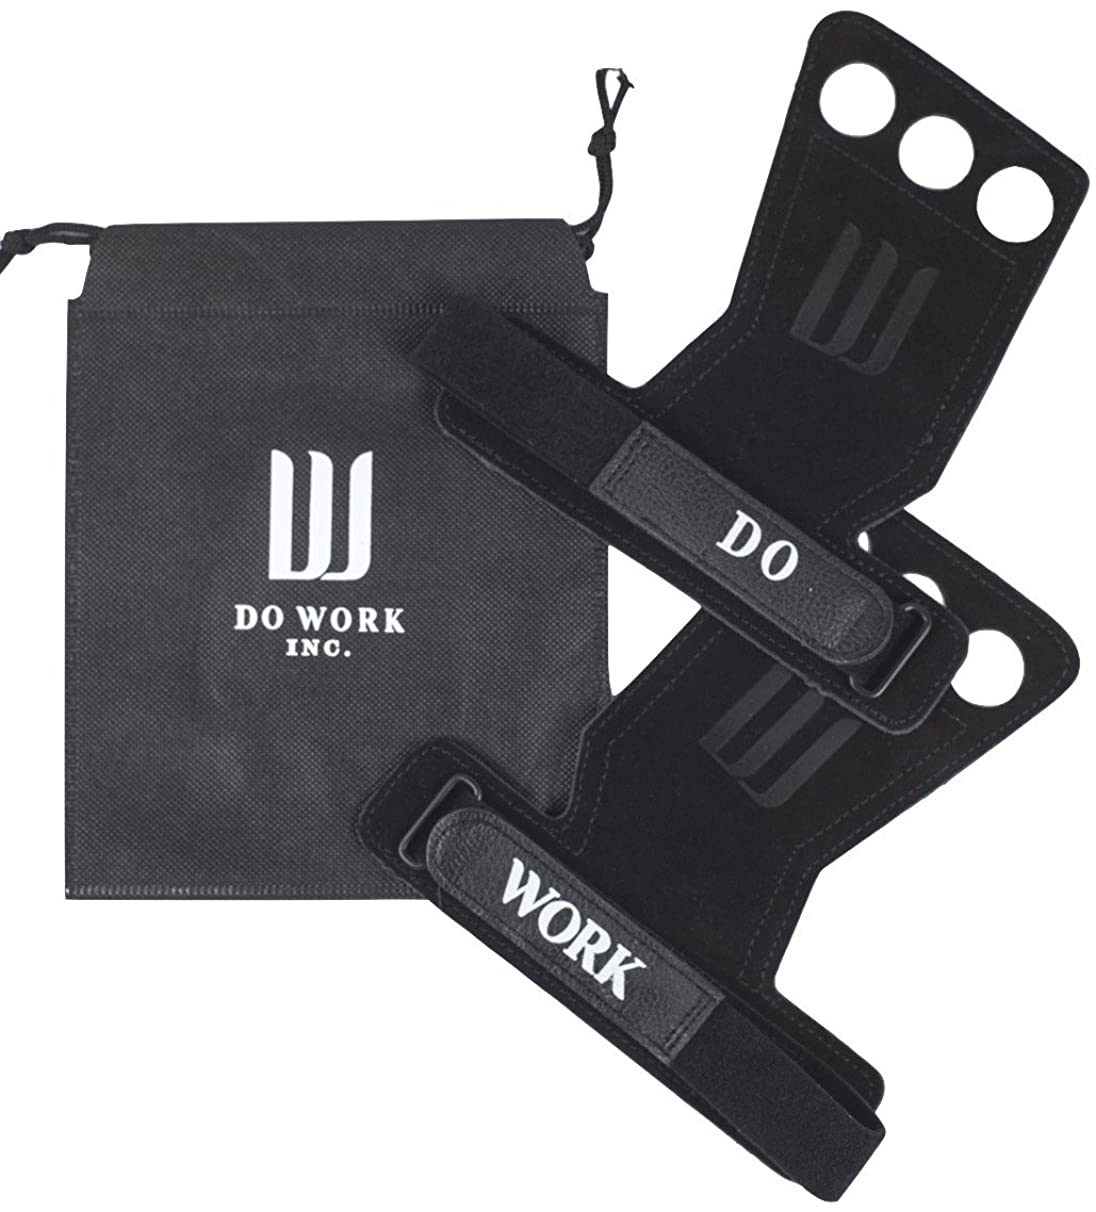 Leather Gymnastics & Crossfit Hand Grips | Professionally Designed for WODs, Pull ups, Weightlifting, Muscle Ups, and Kettlebells - by Do Work.